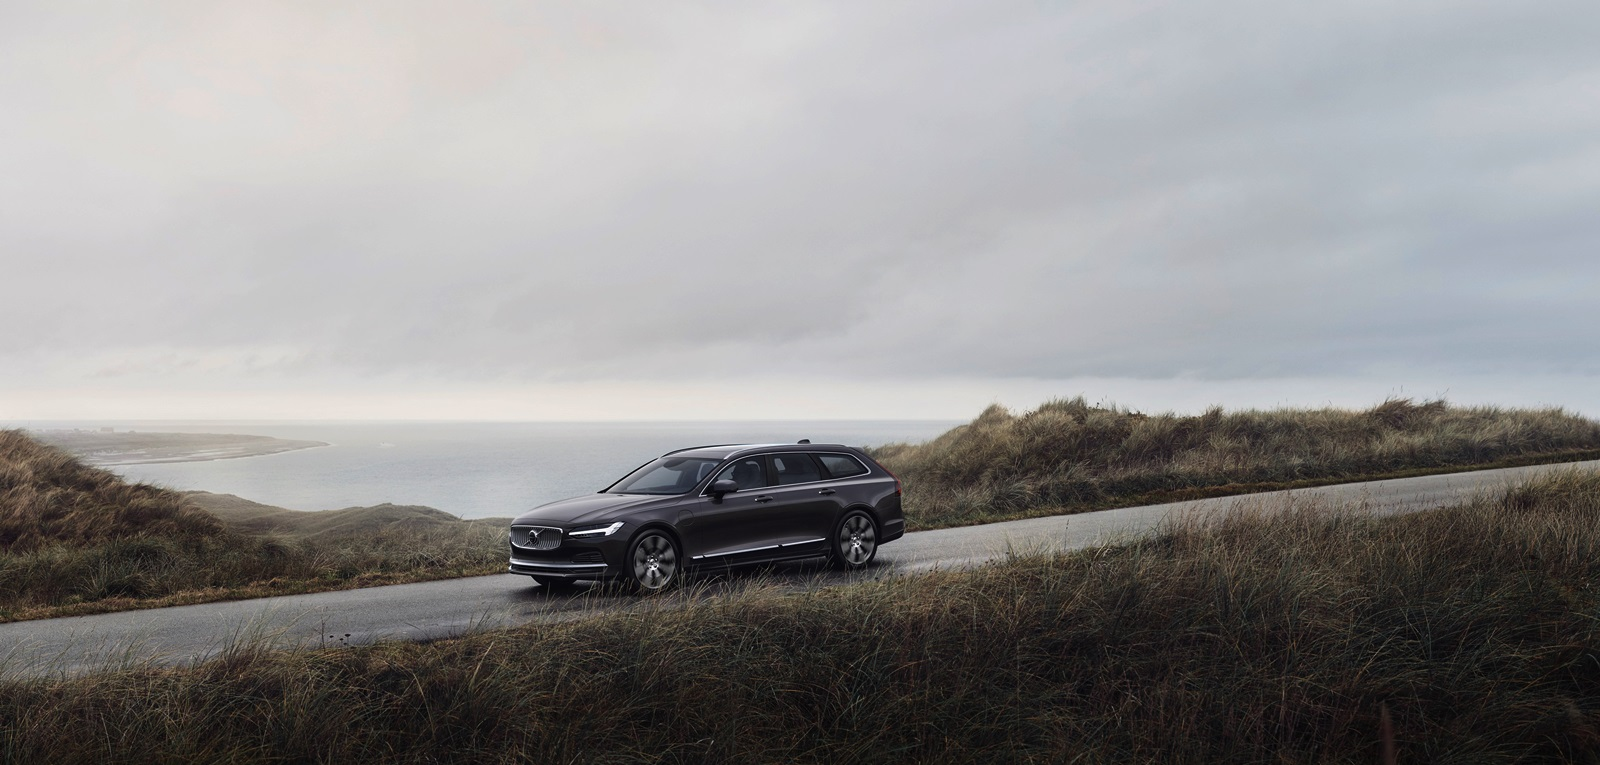 The Refreshed Volvo V90 Recharge T8 Plug In Hybrid In Platinum Grey